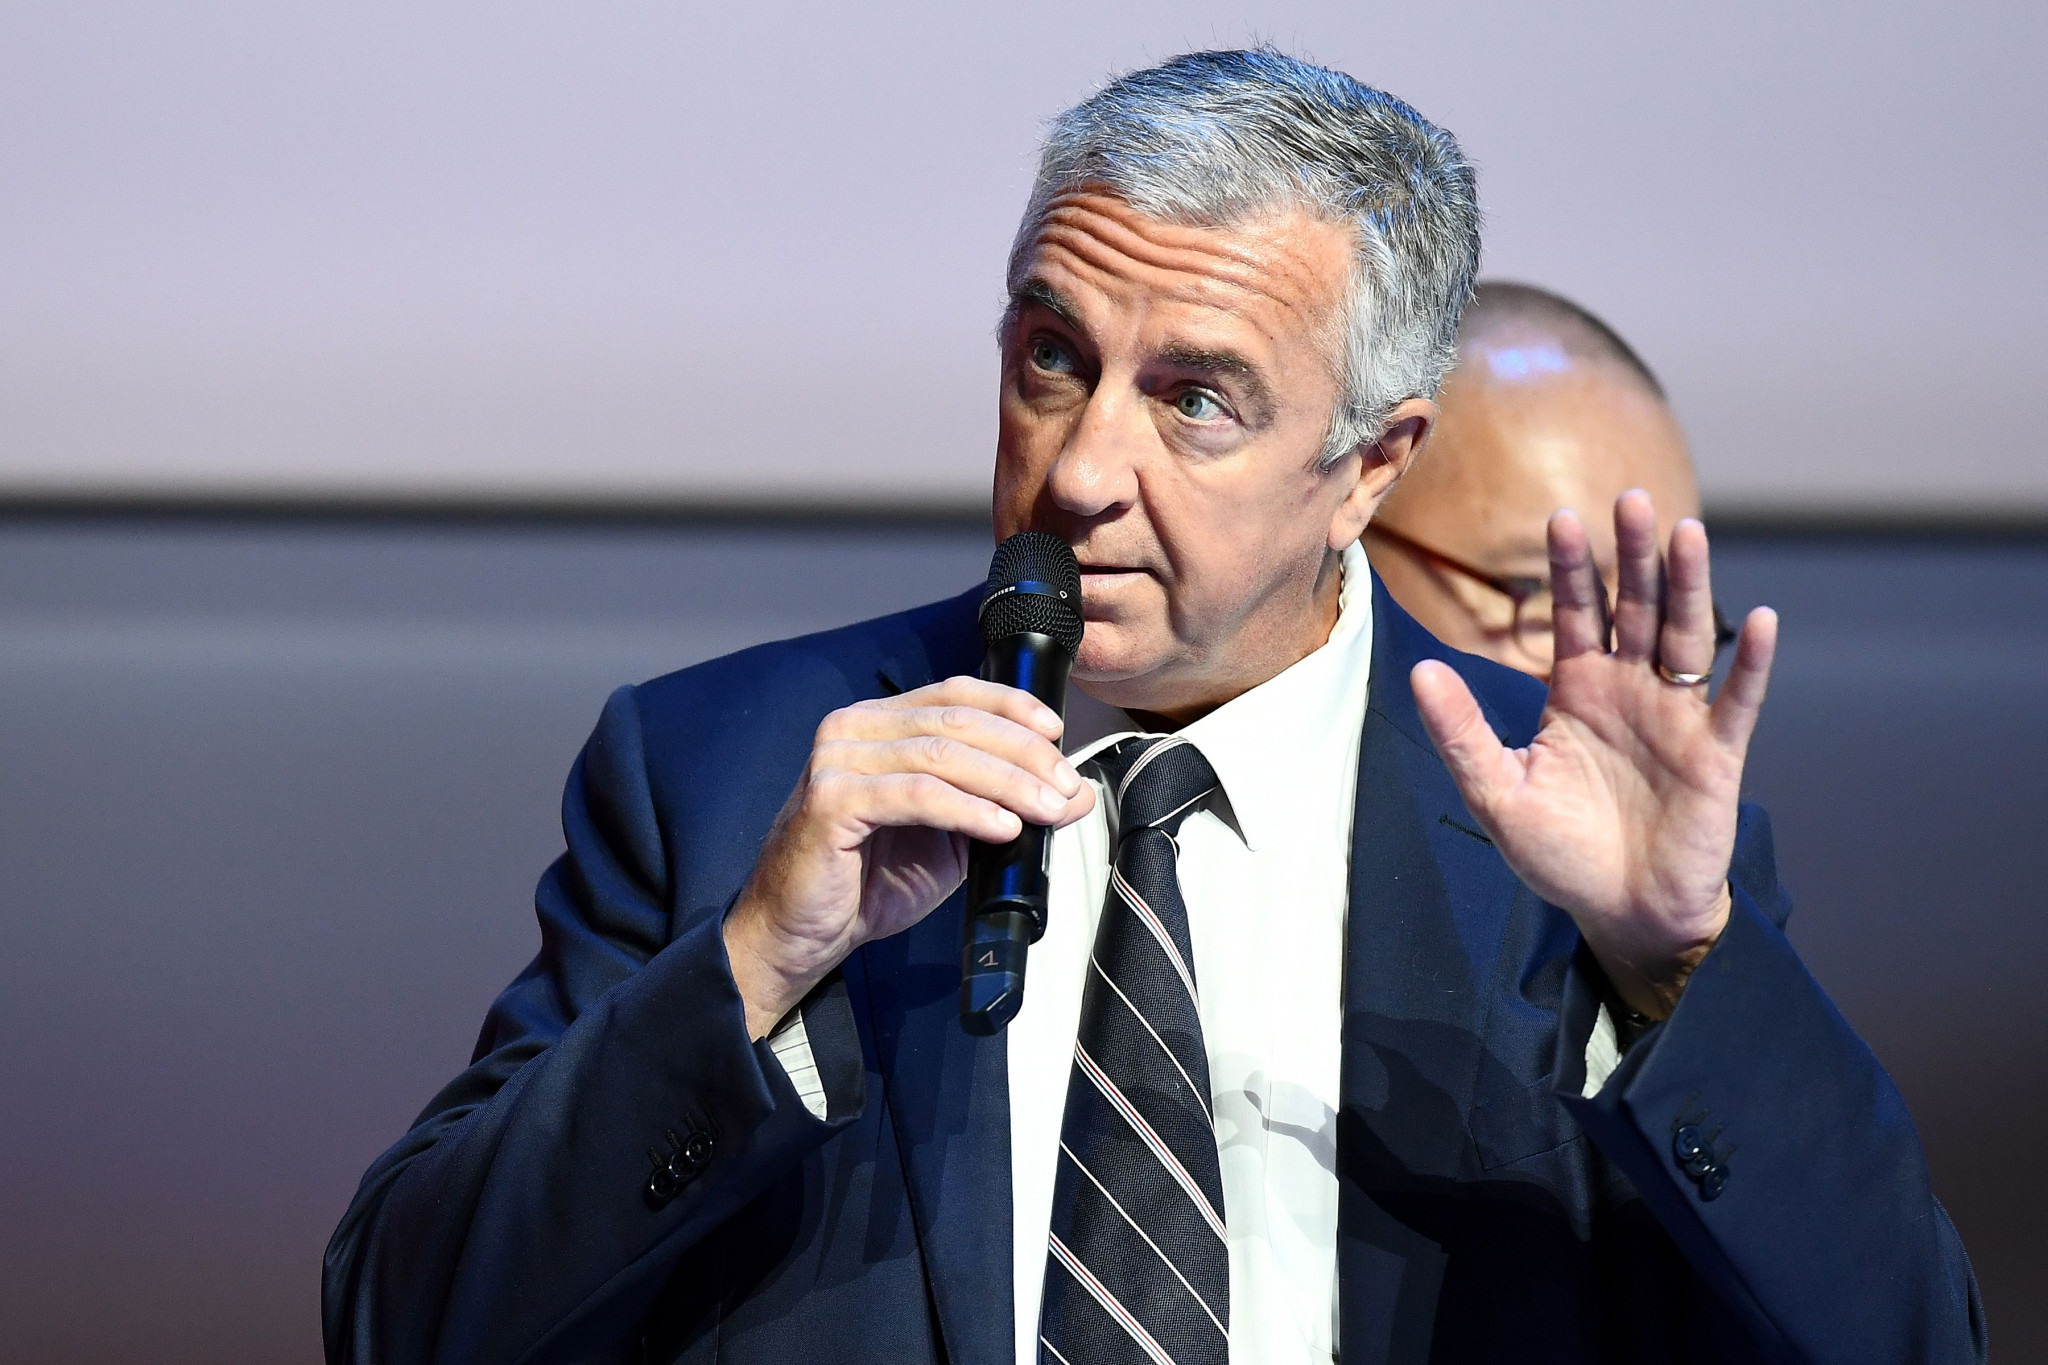 Luc Tardif was elected IIHF President yesterday after winning by 67 votes to Franz Reindl's 39 in the final round ©Getty Images